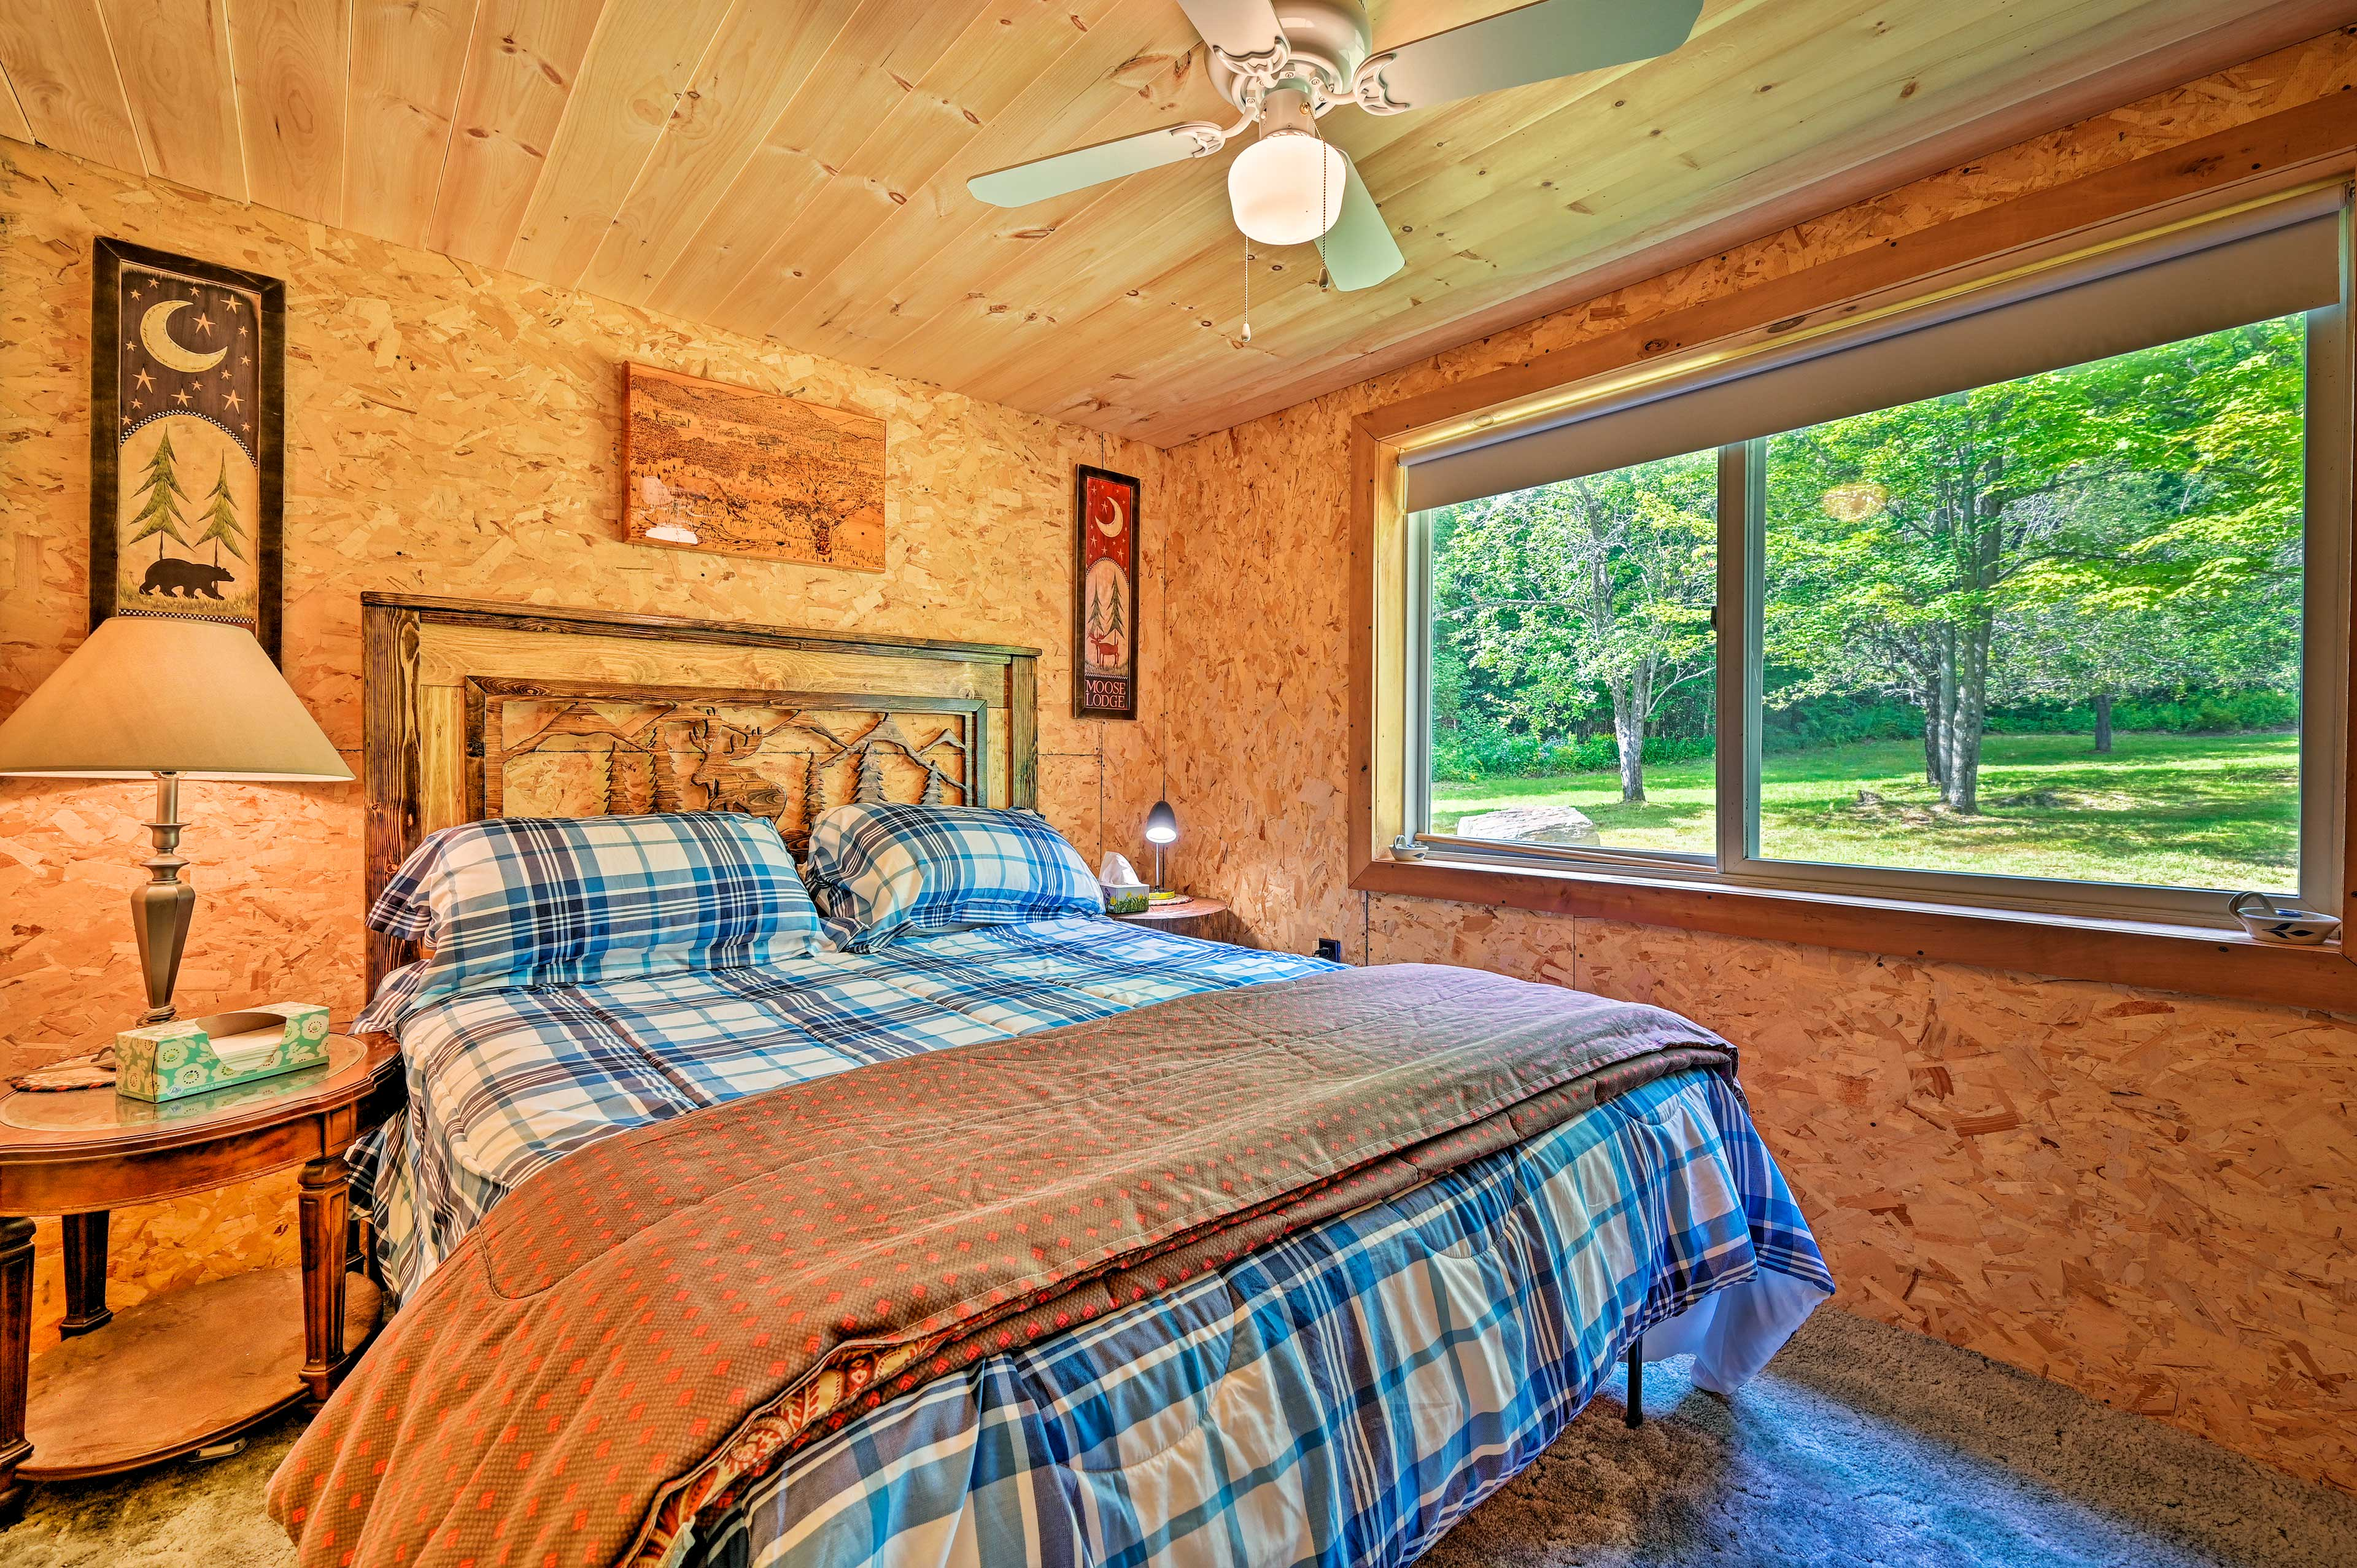 The bedroom boasts a queen bed beside the picture window.